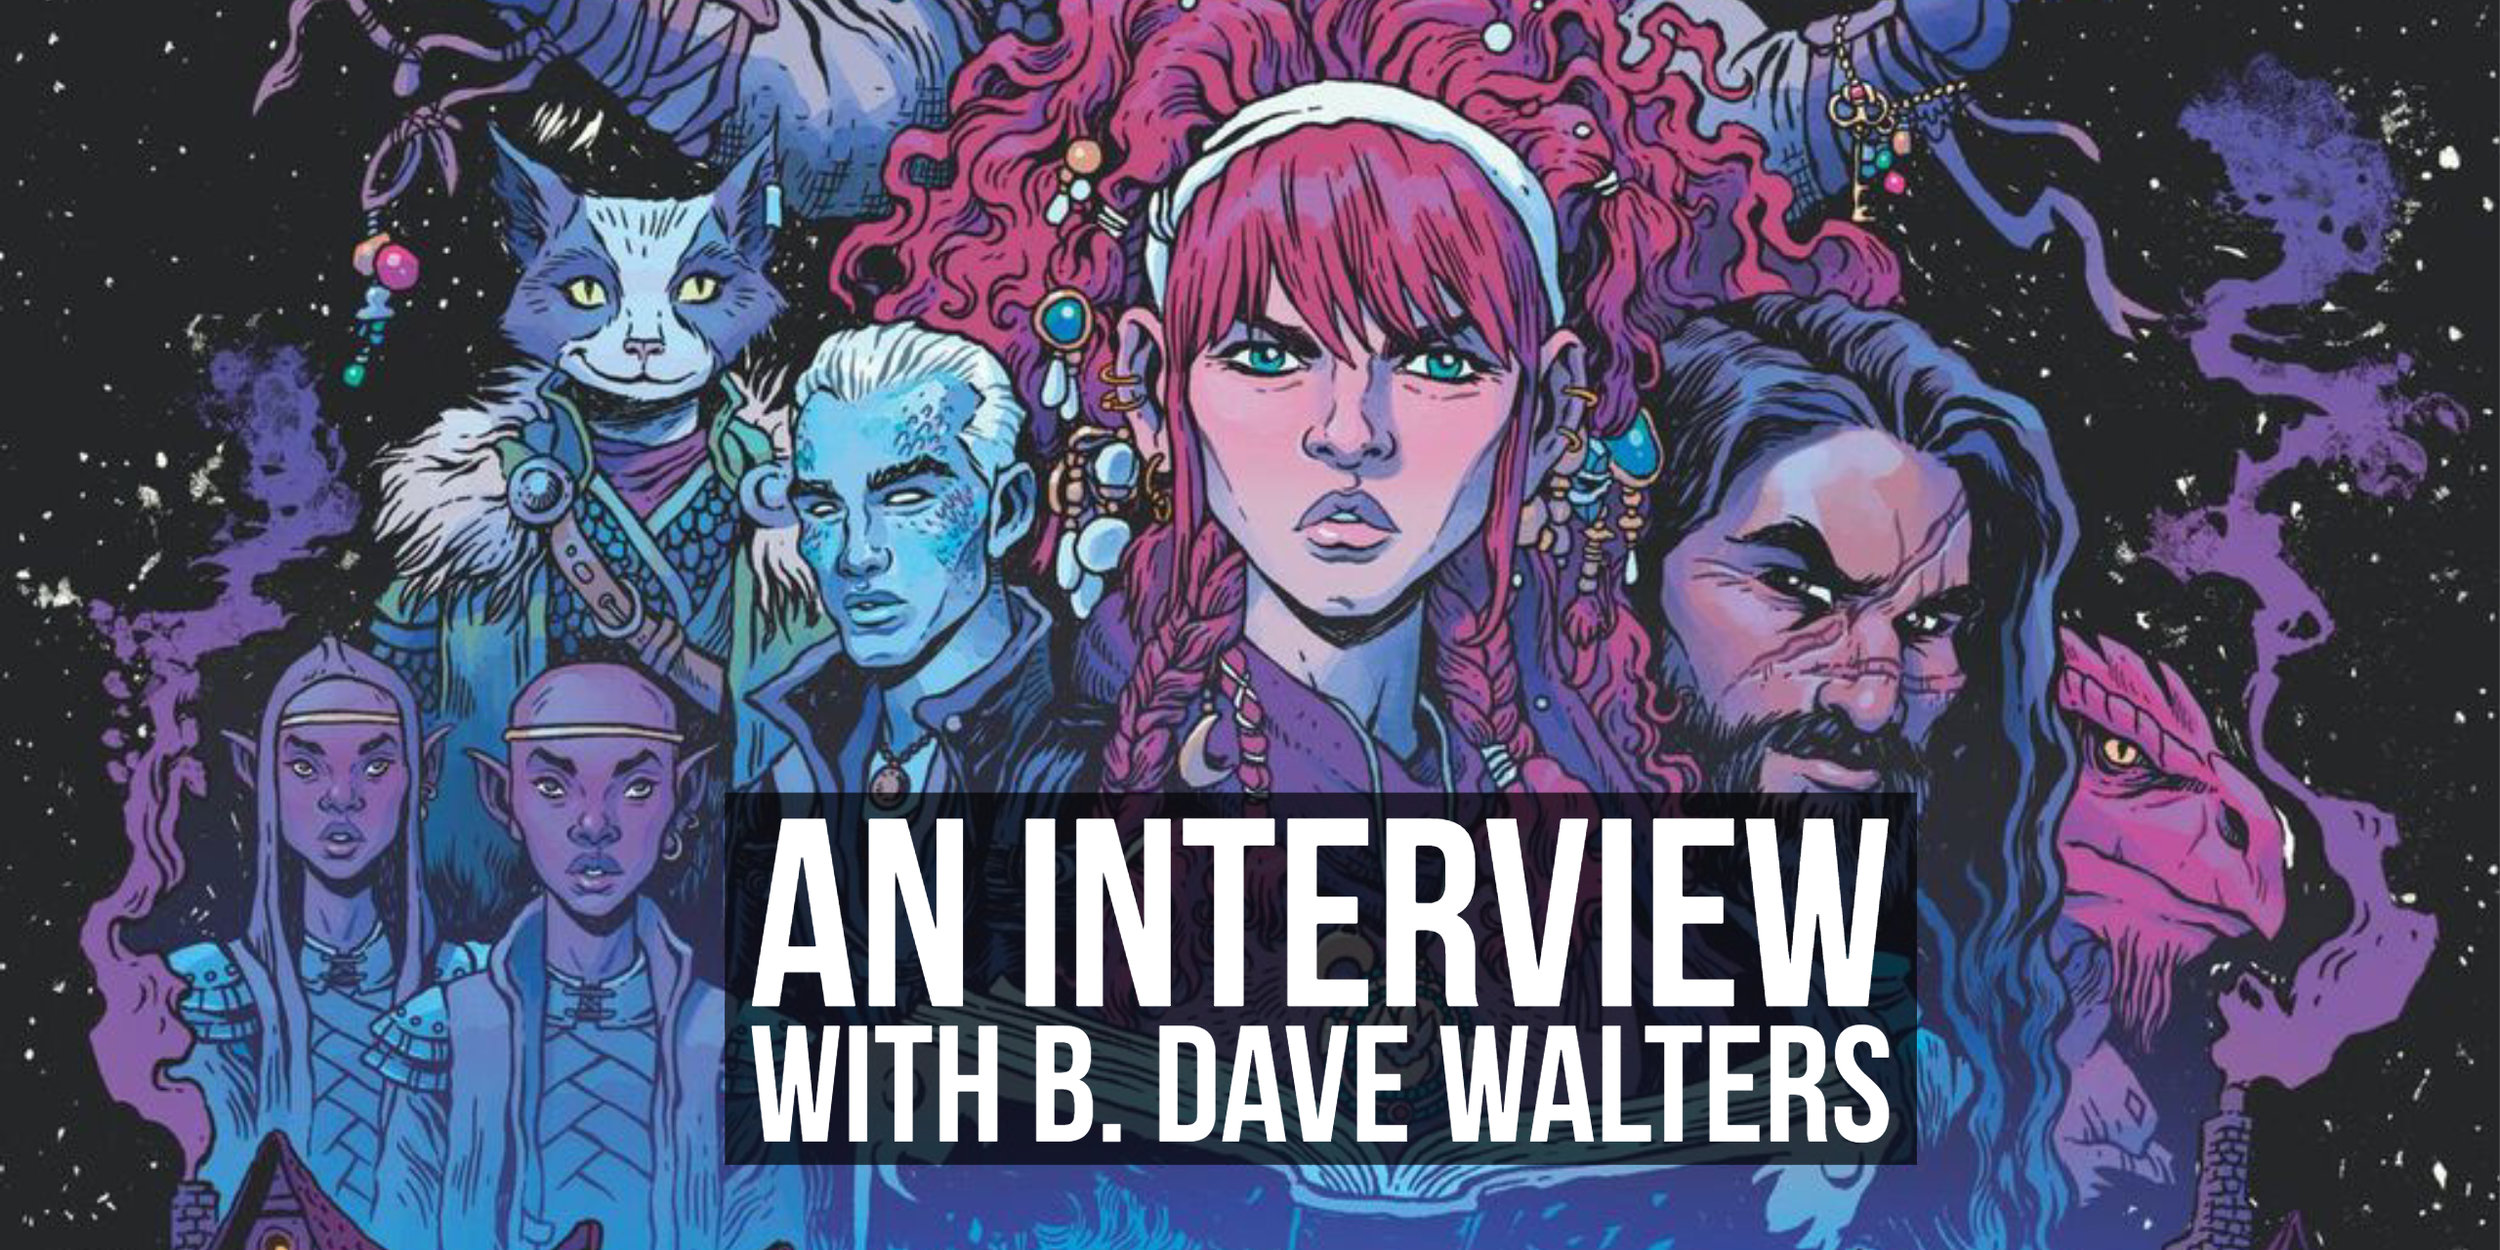 An Interview with B. Dave Walters Web.jpg